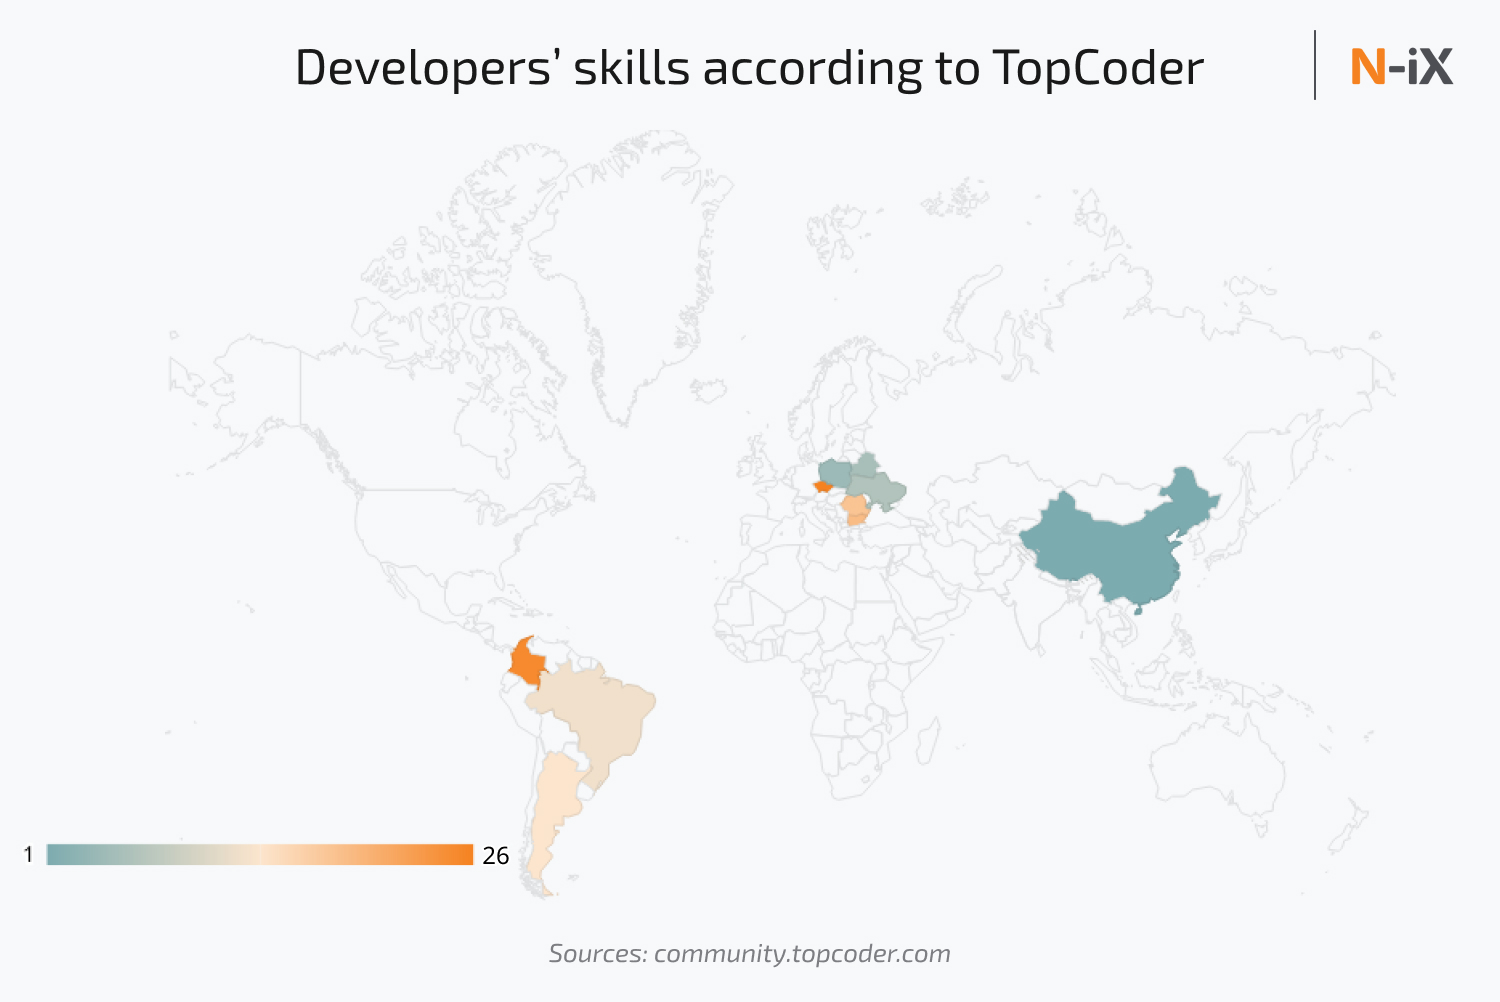 Where to outsource: tech qualifications according to TopCoder ranking